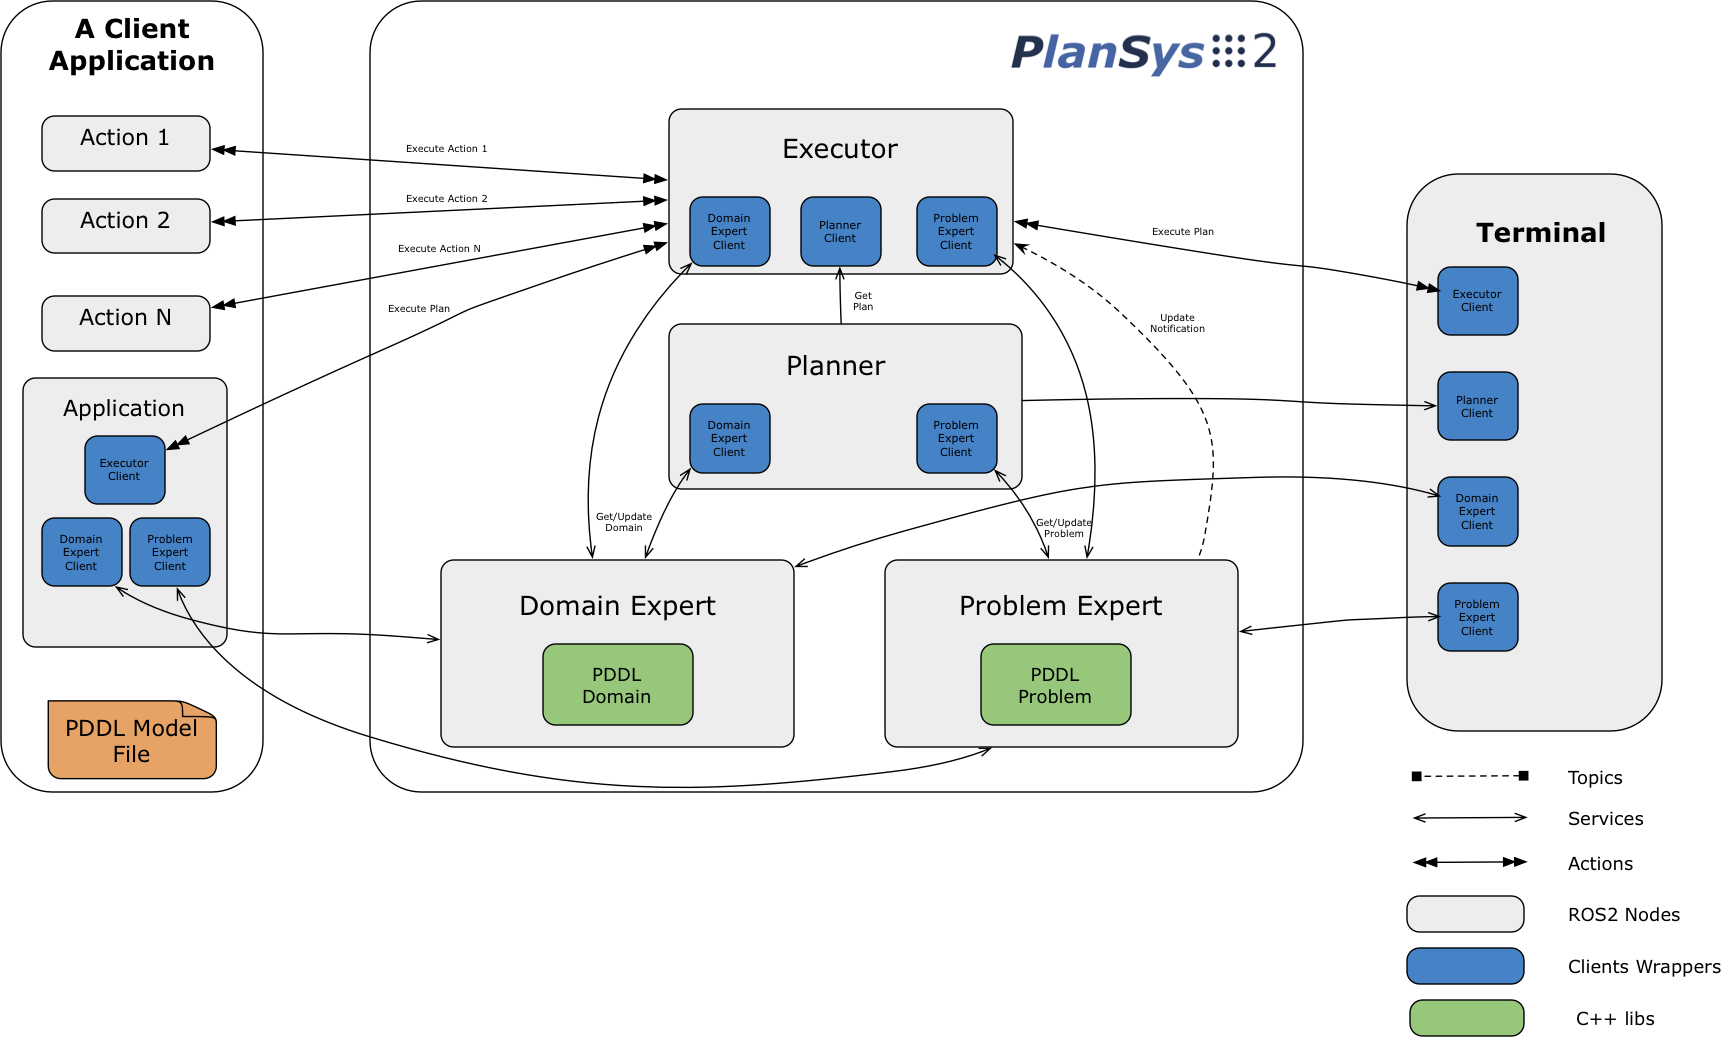 plansys2_overview